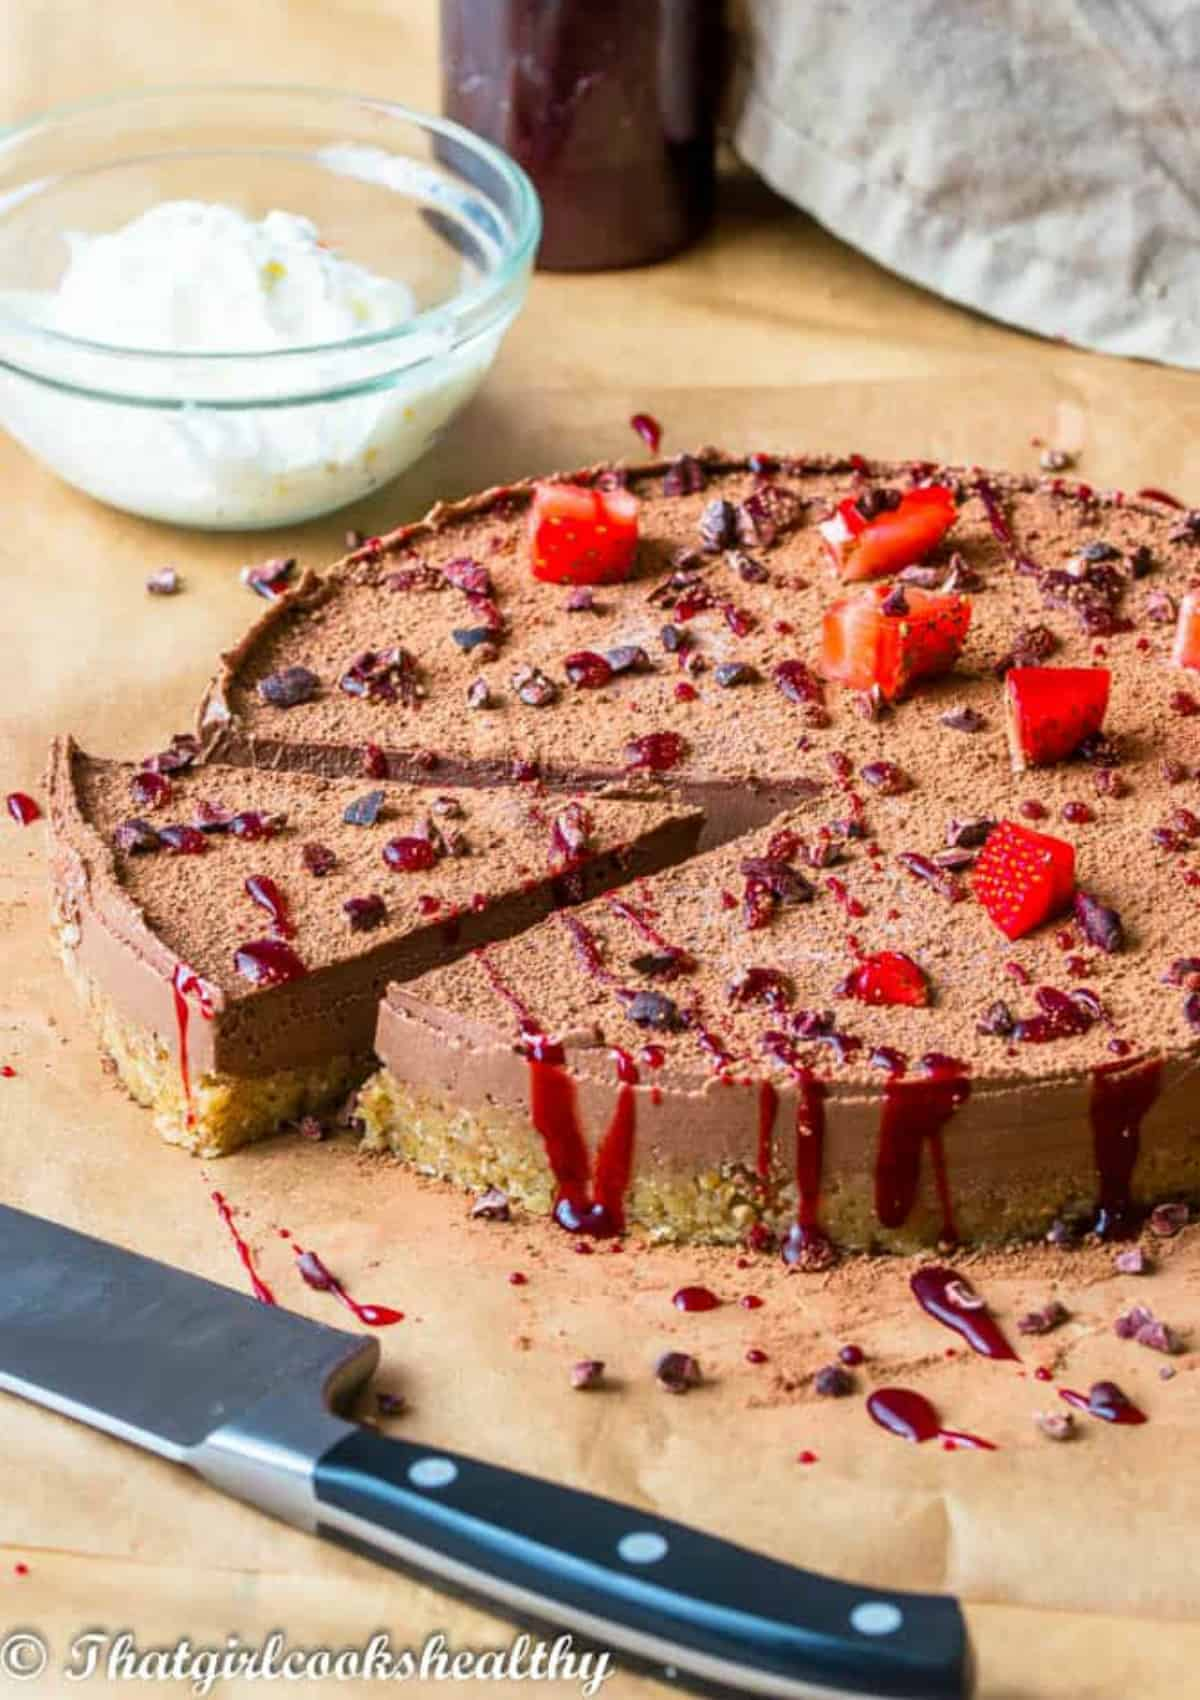 slicing a portion of chocolate cheesecake